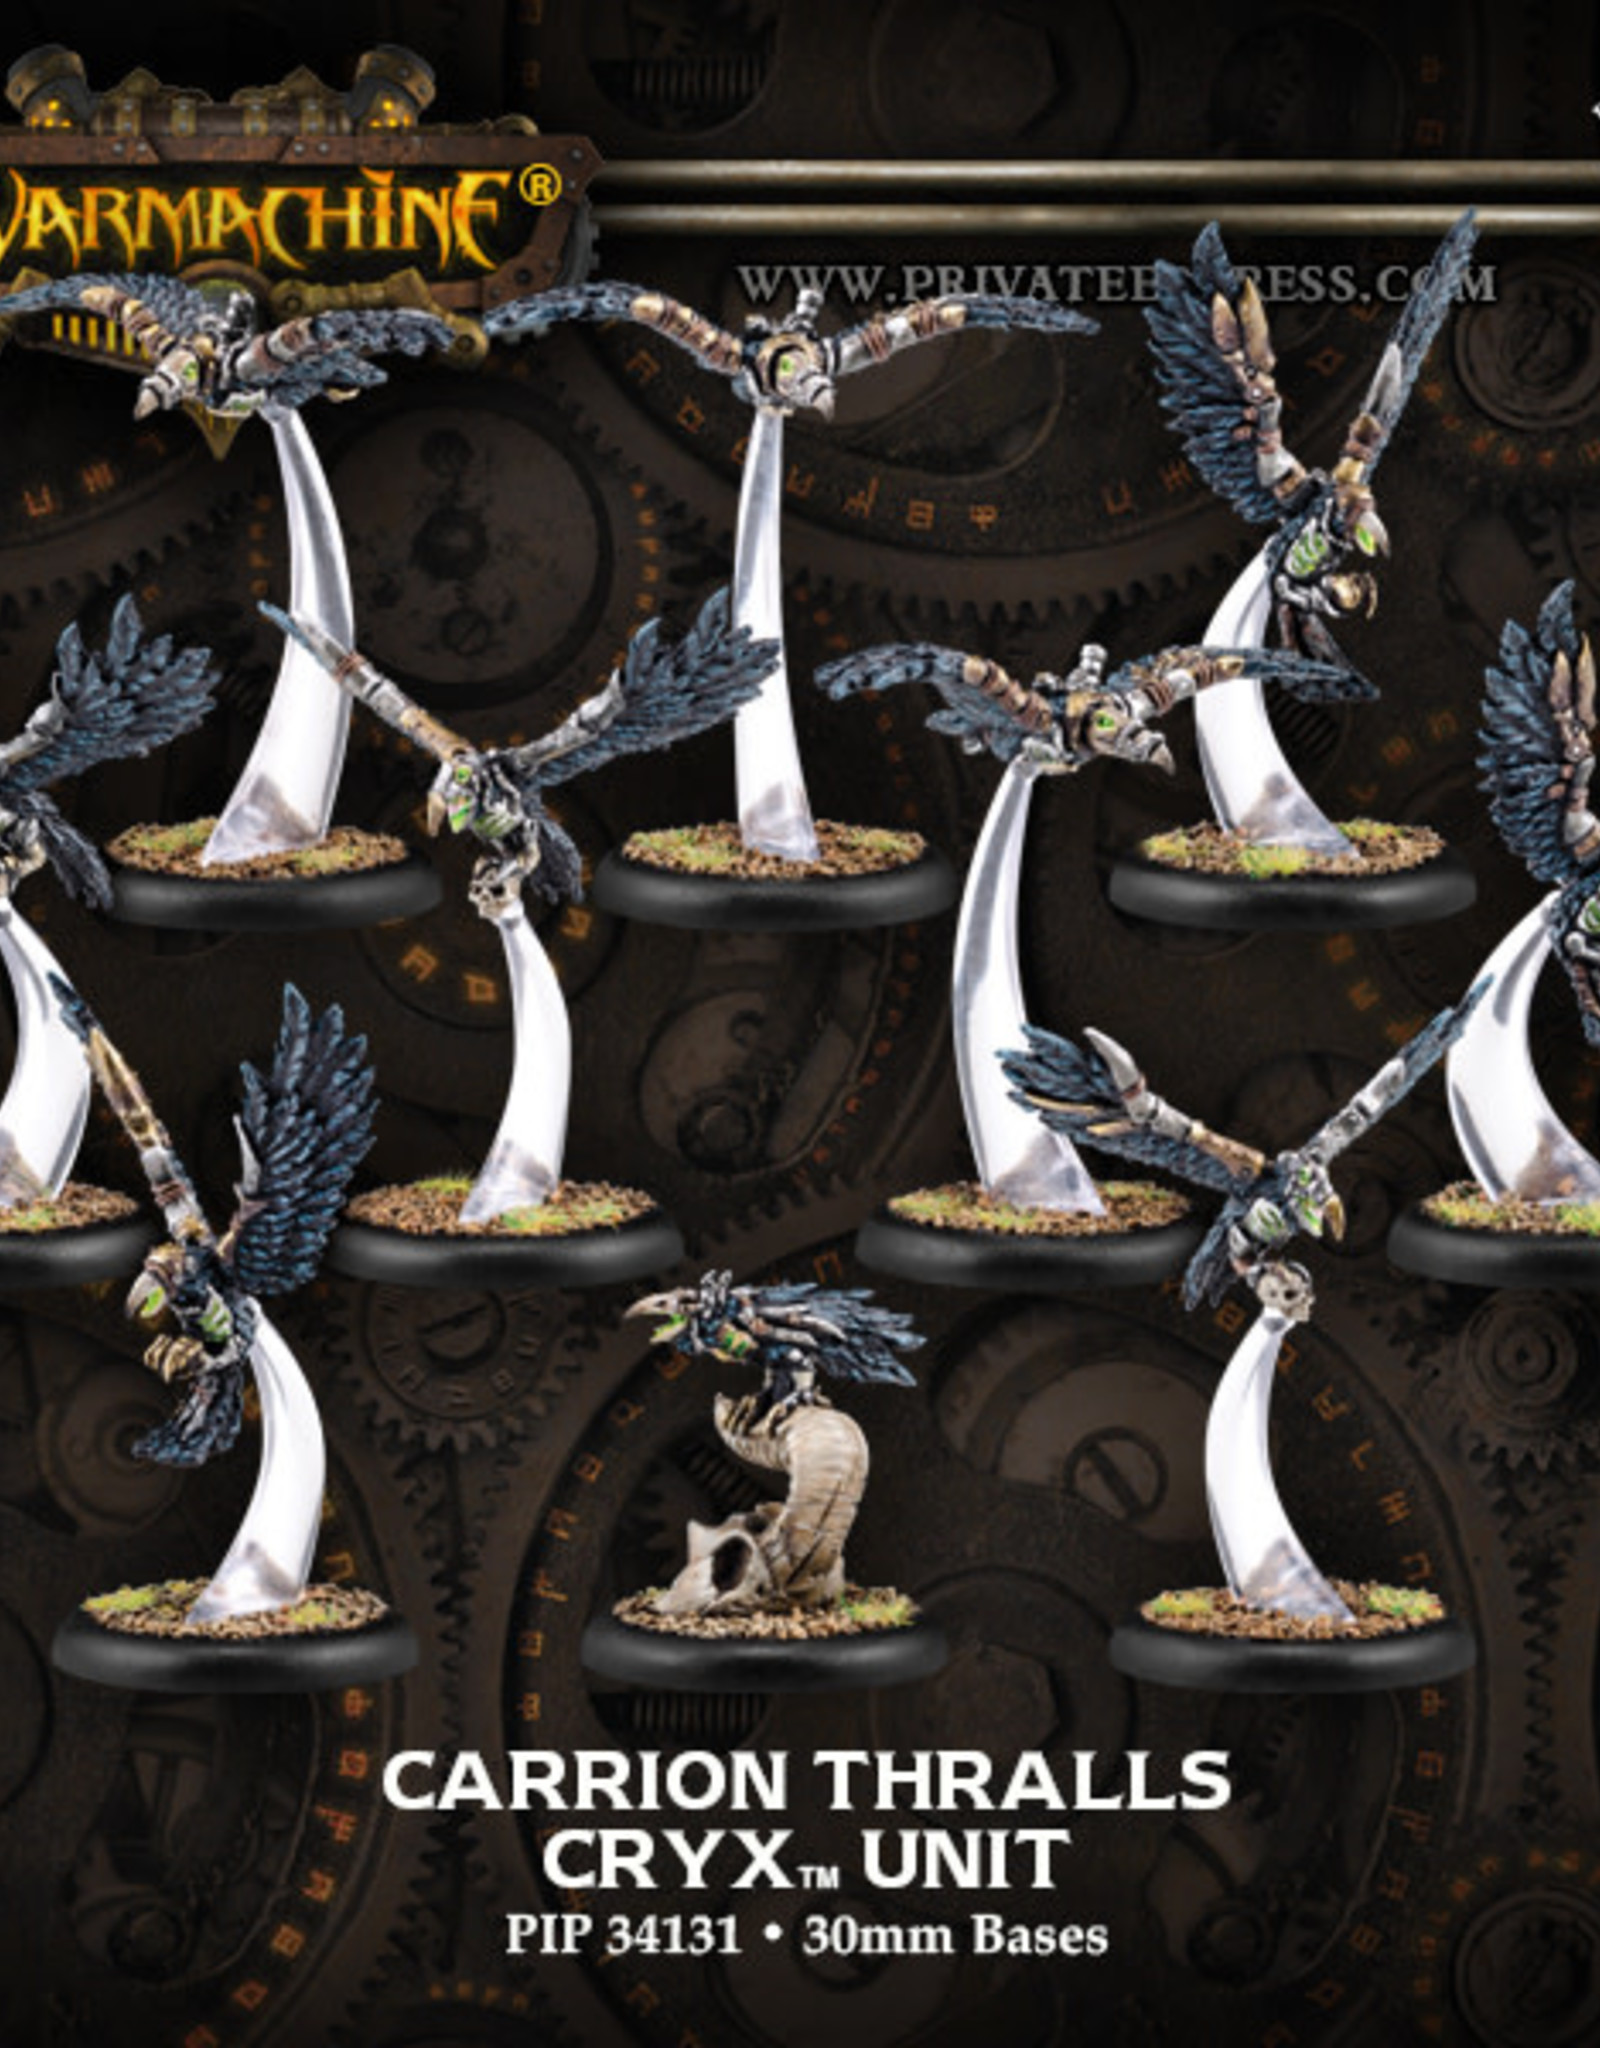 Warmachine Cryx - Carrion Thralls